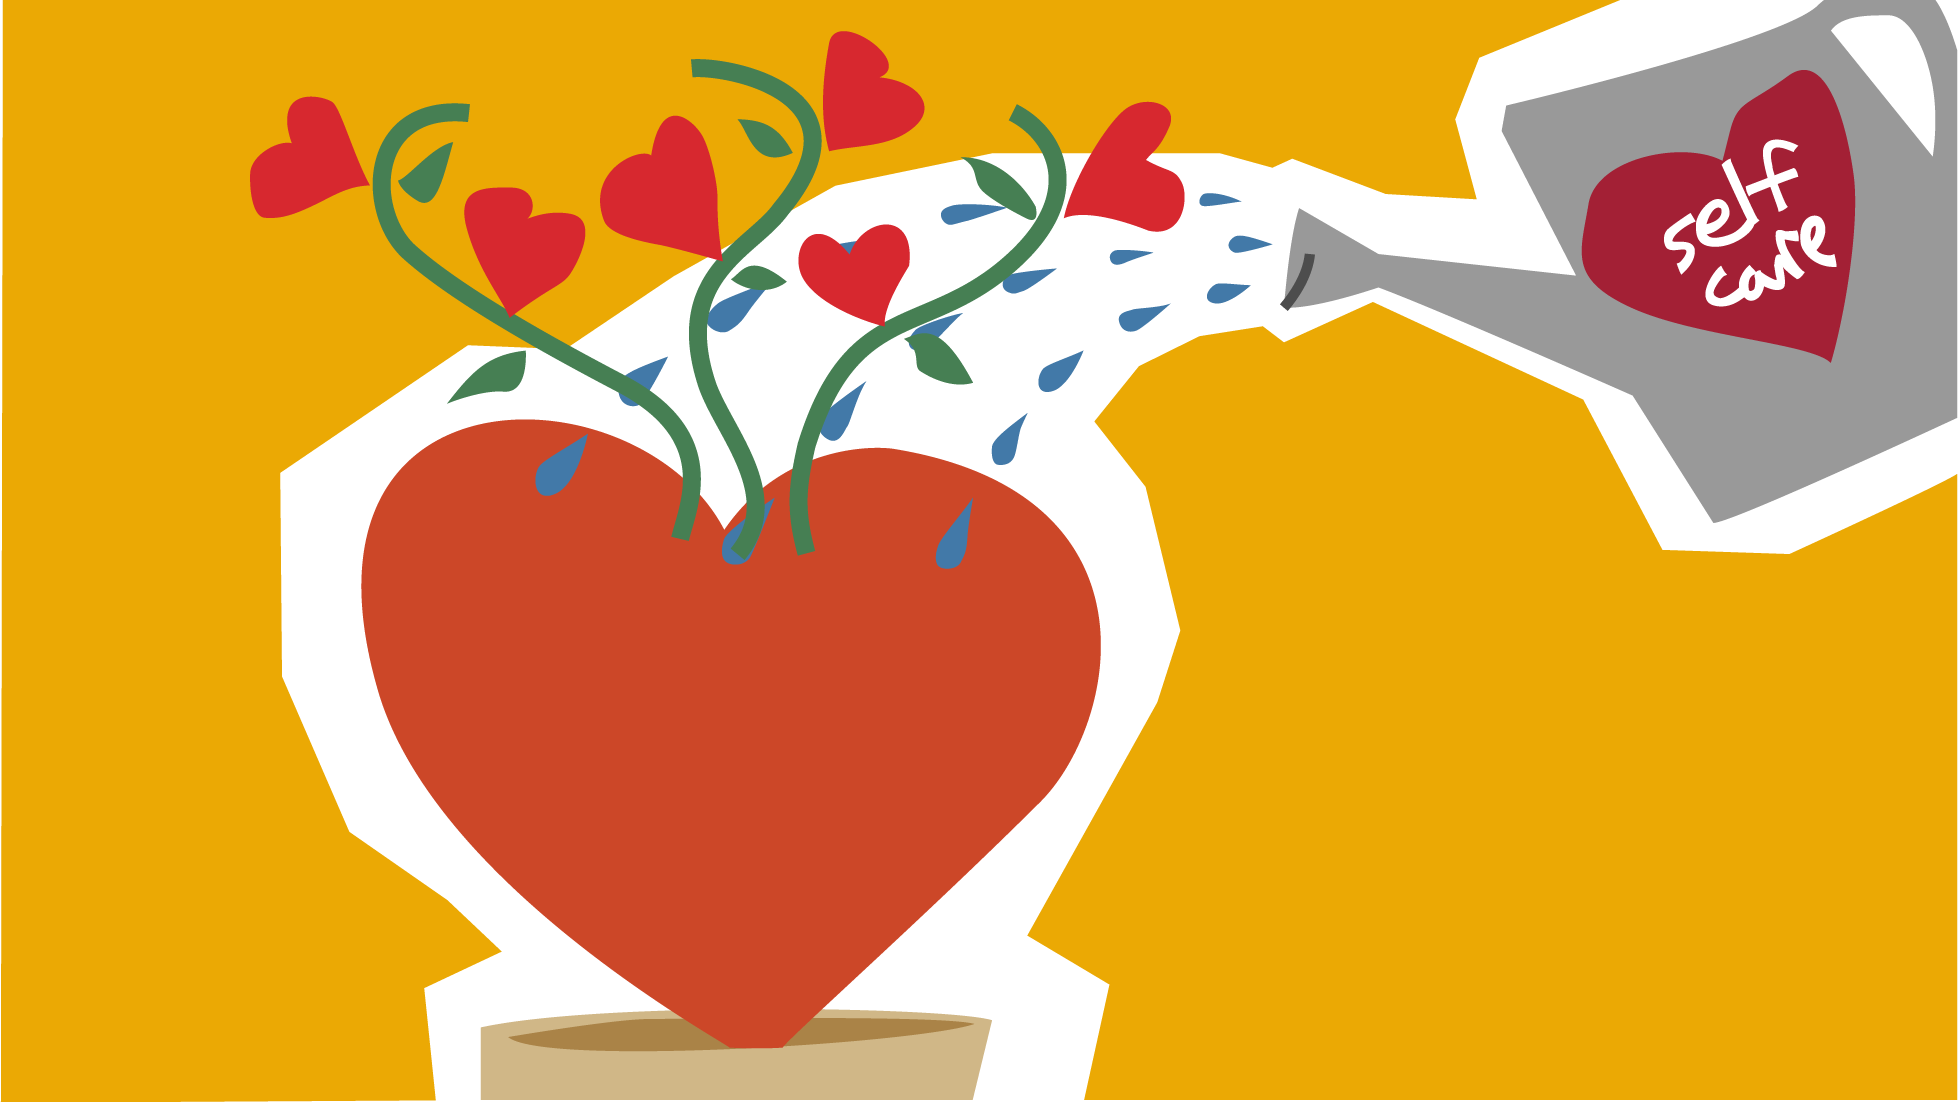 An illustration of a self-care watering can pouring onto a growing heart.